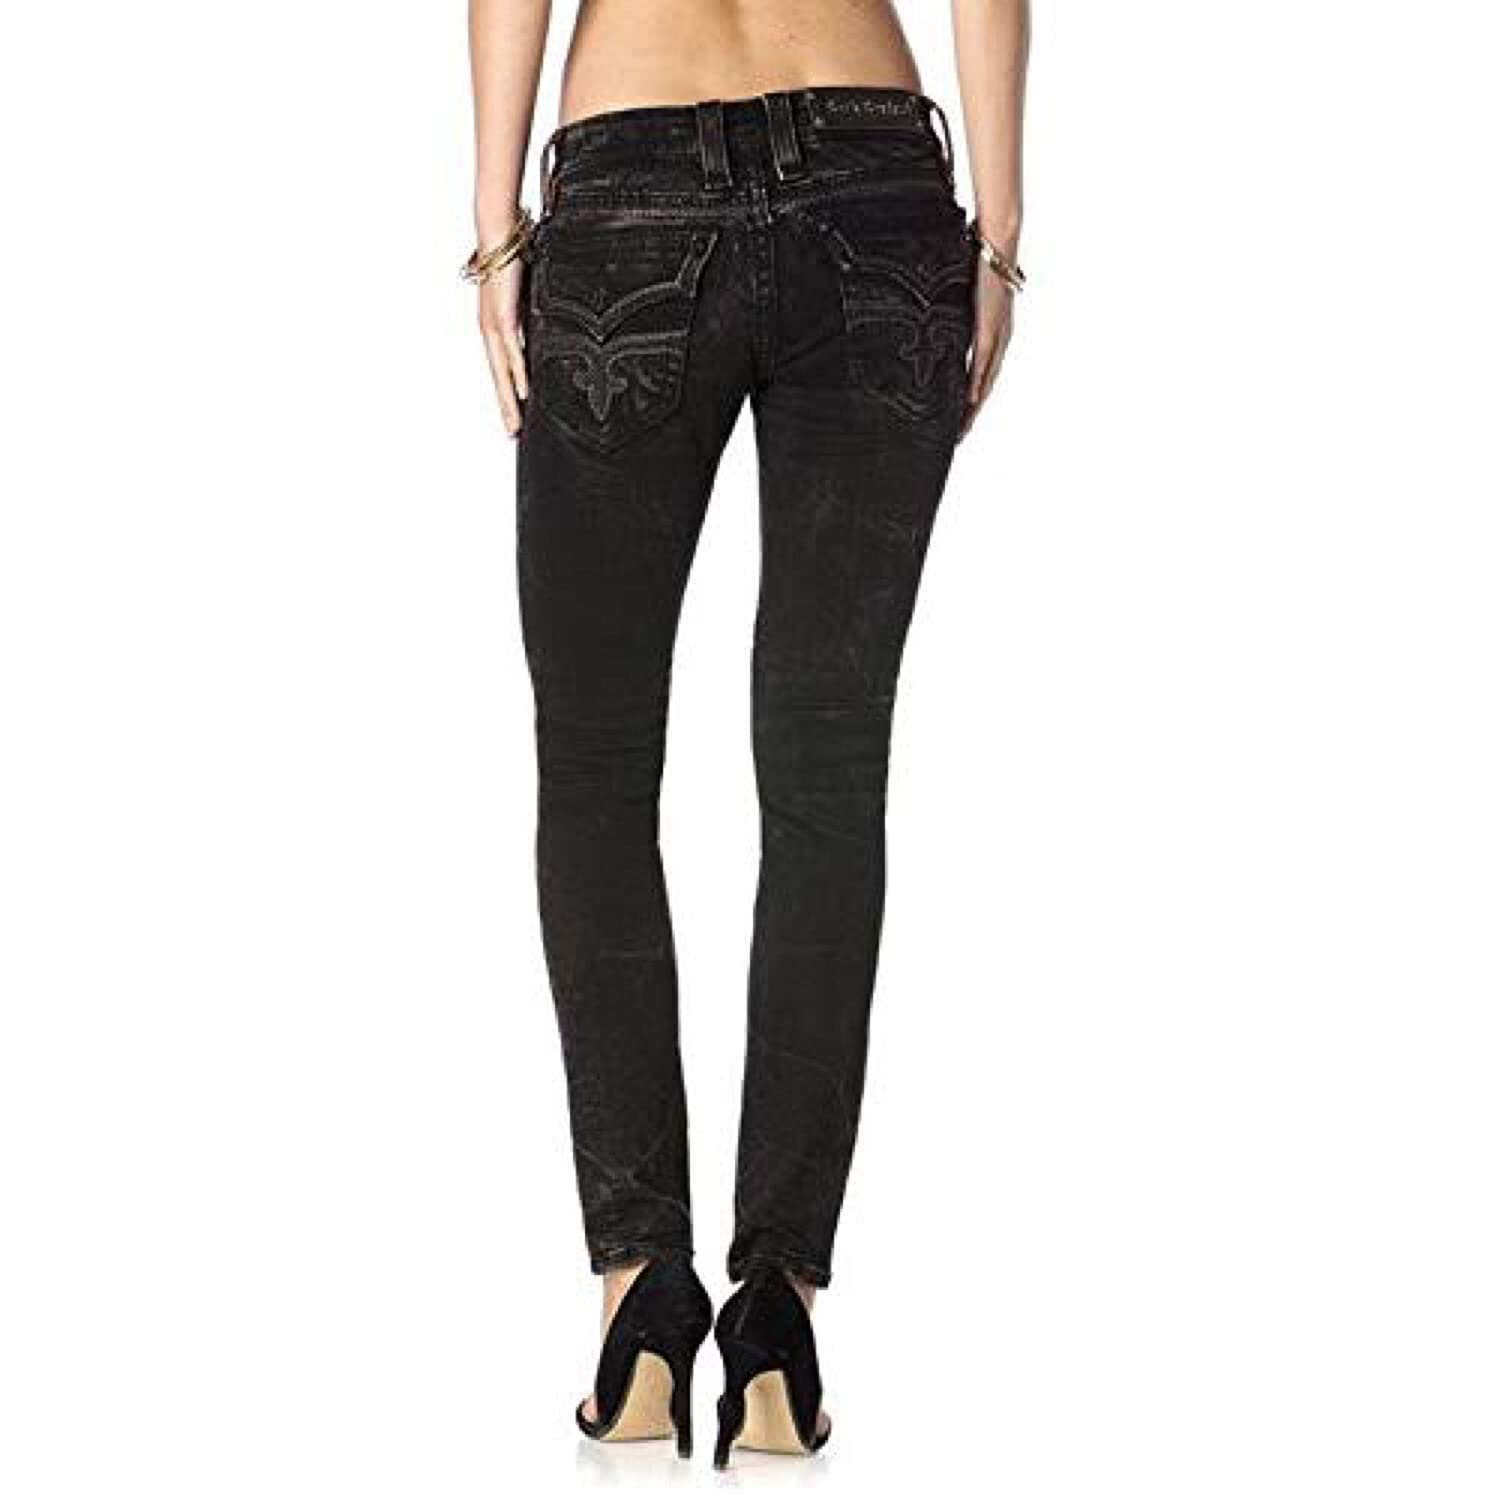 56270705c5 Rock Revival Anais S10 Skinny Distressed Black Crinkled Stretch Jeans (24)  at Amazon Women s Jeans store